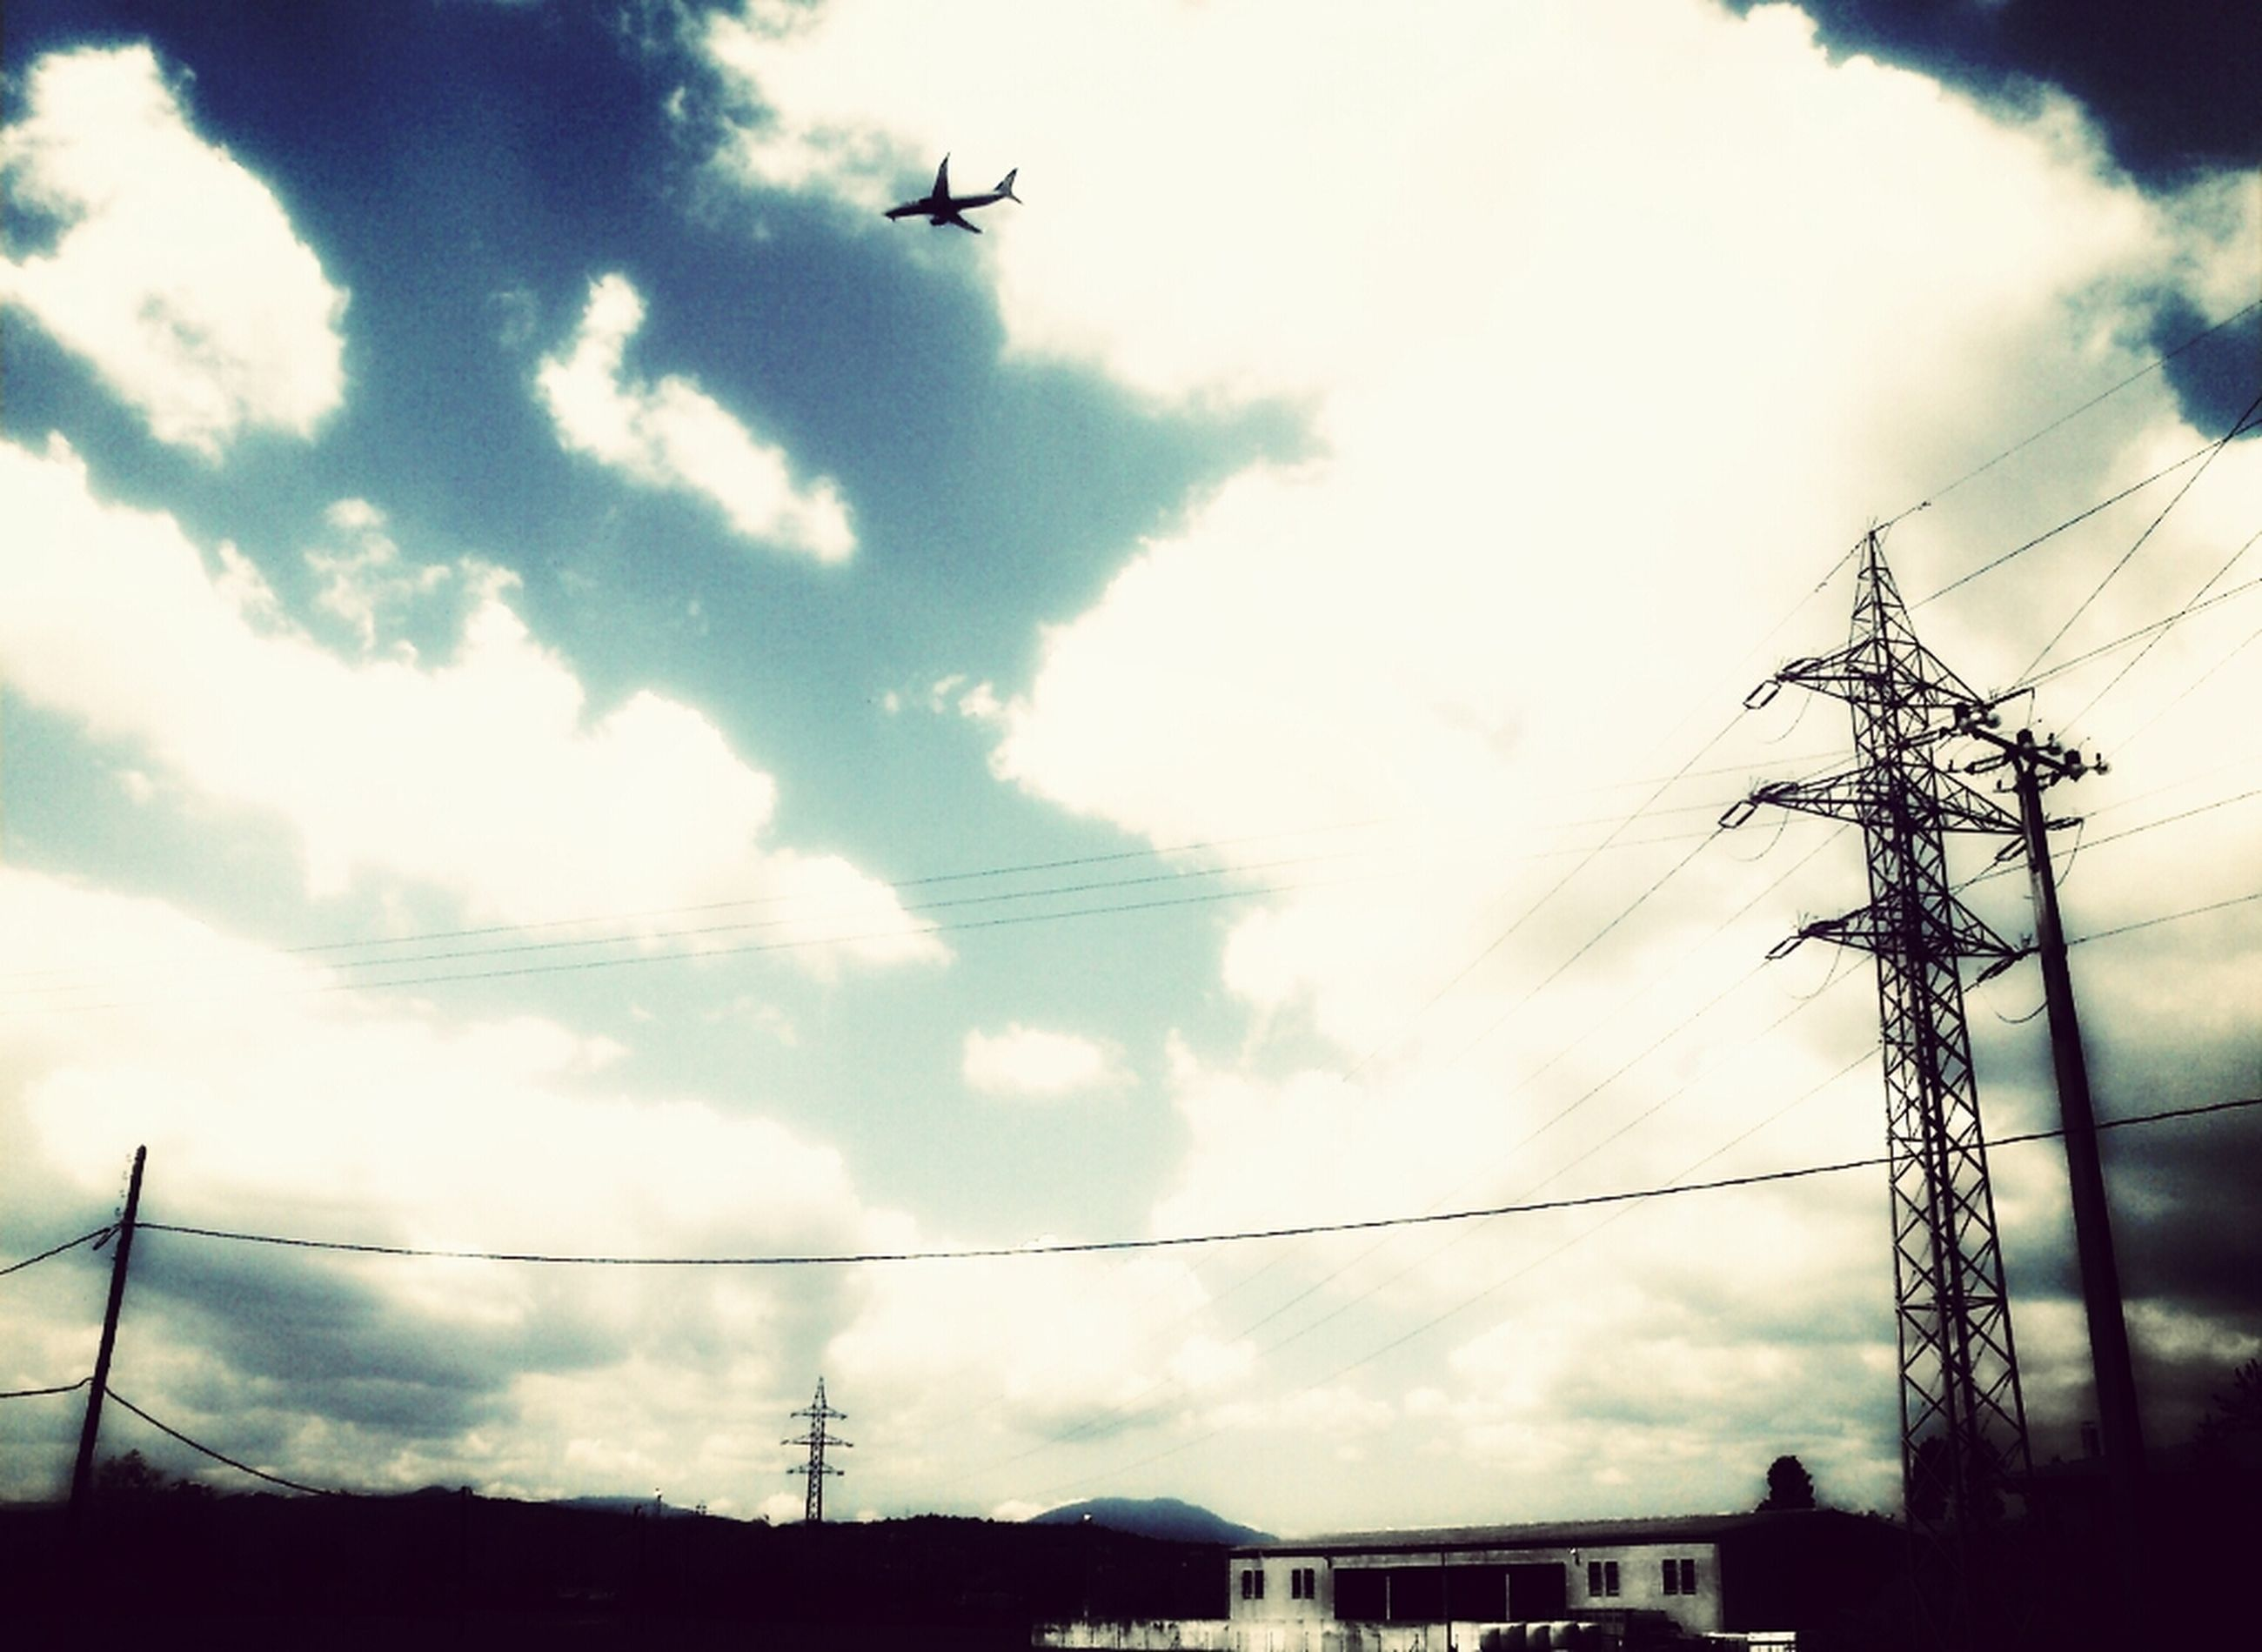 sky, low angle view, power line, cloud - sky, transportation, cloudy, electricity, electricity pylon, building exterior, cloud, mode of transport, fuel and power generation, technology, airplane, cable, power supply, connection, built structure, silhouette, street light